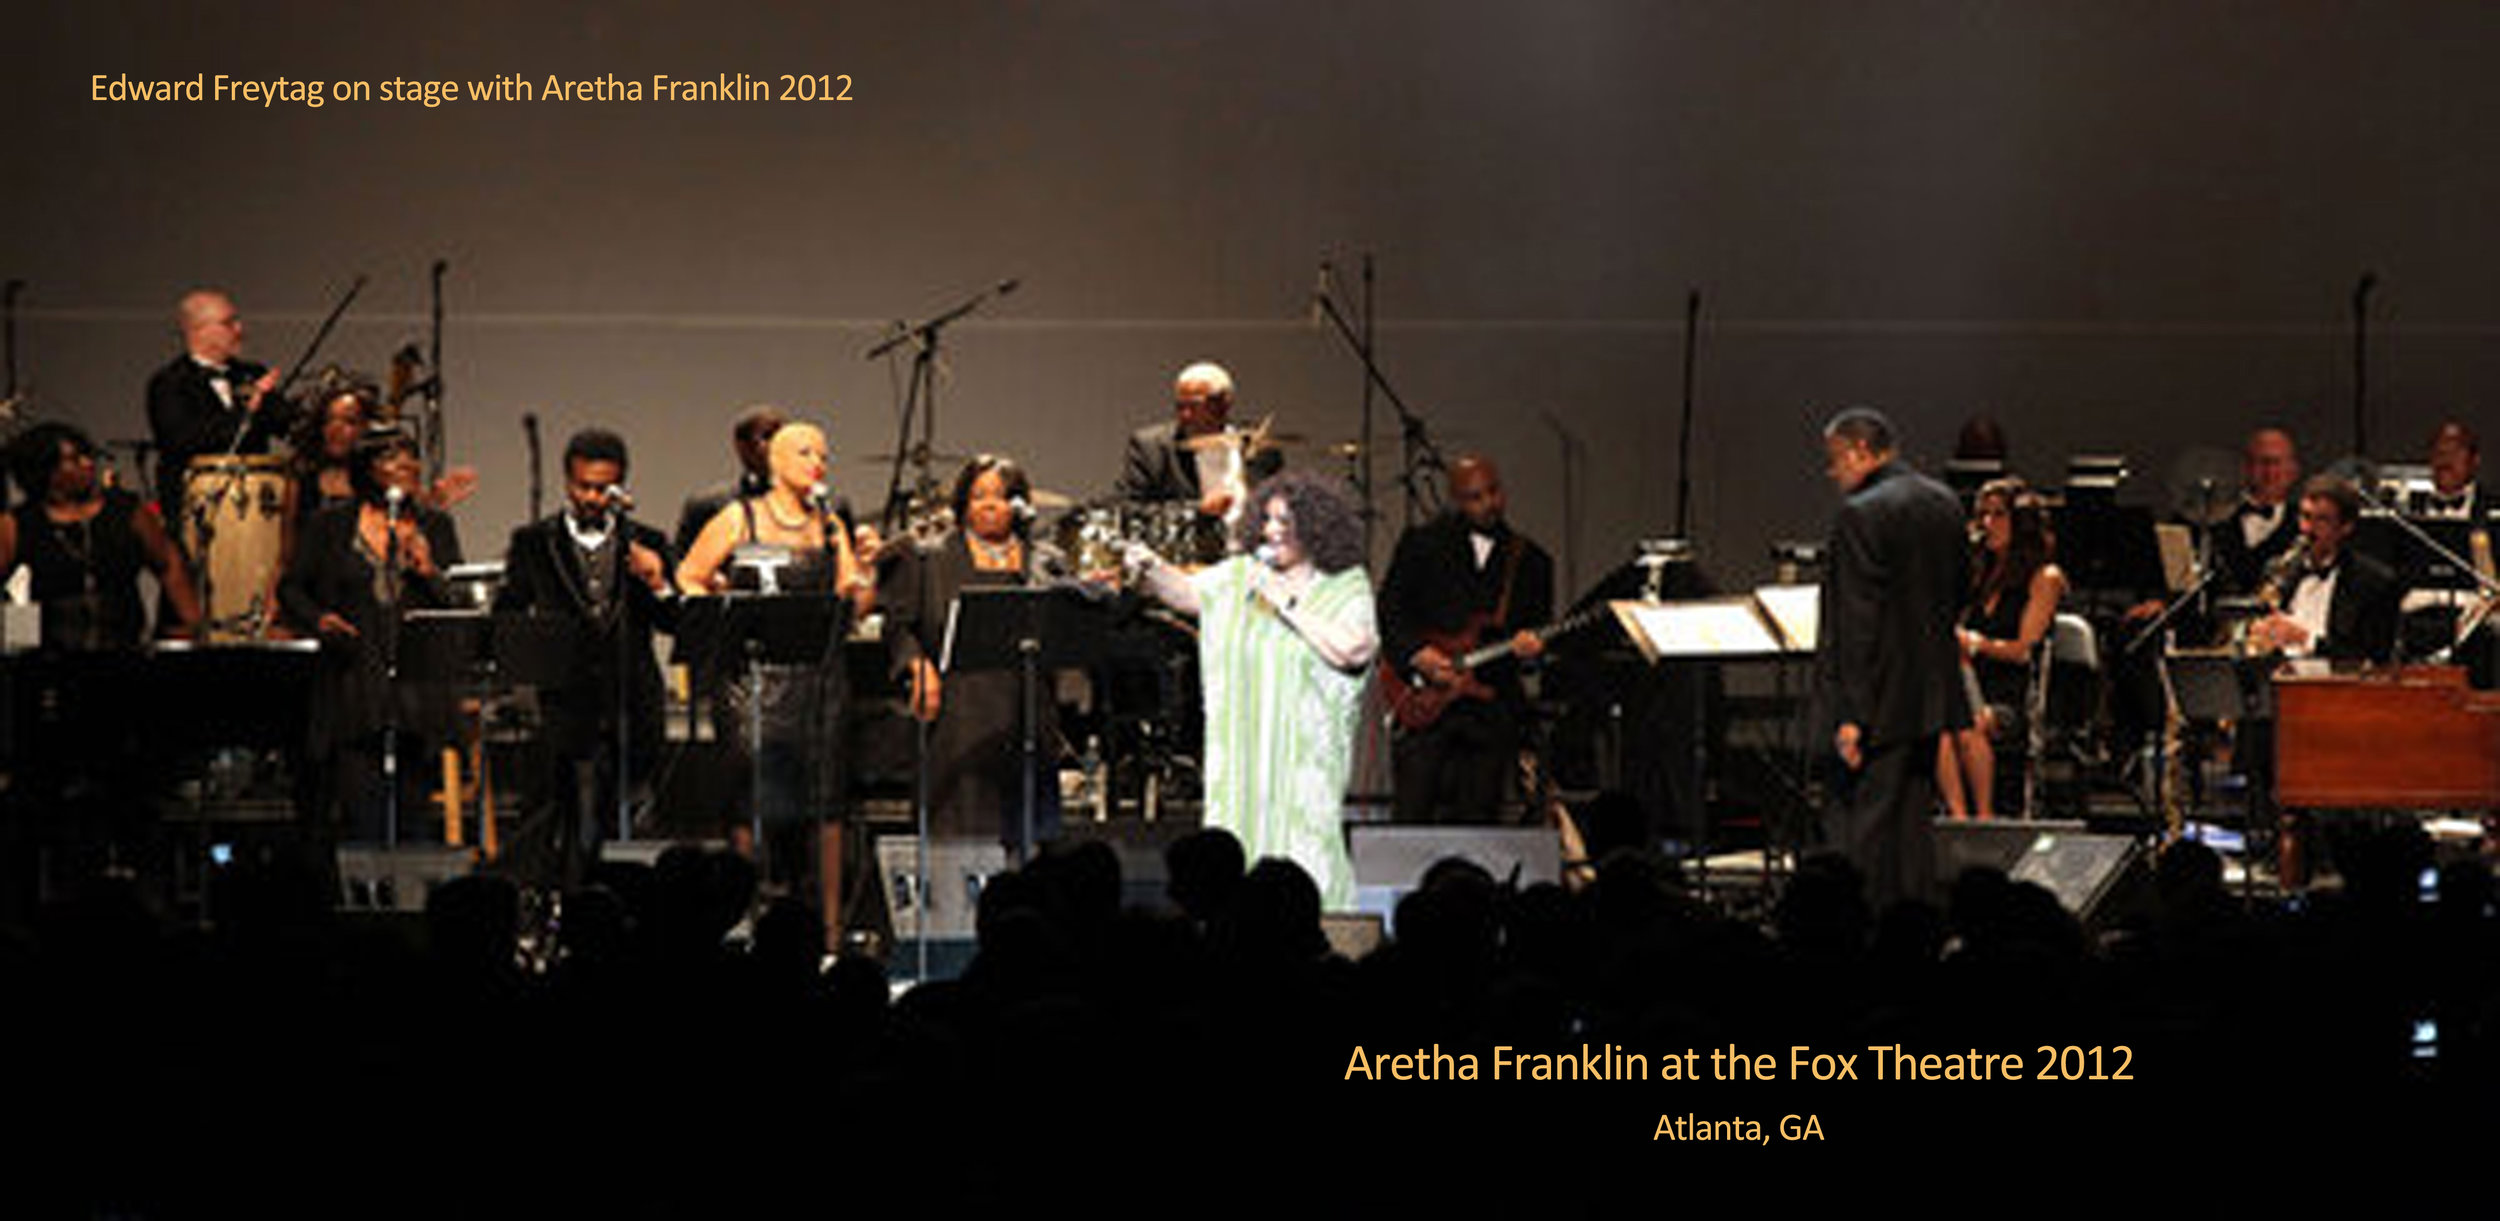 With Aretha Franklin in Atlanta's Fox Theater, 2012